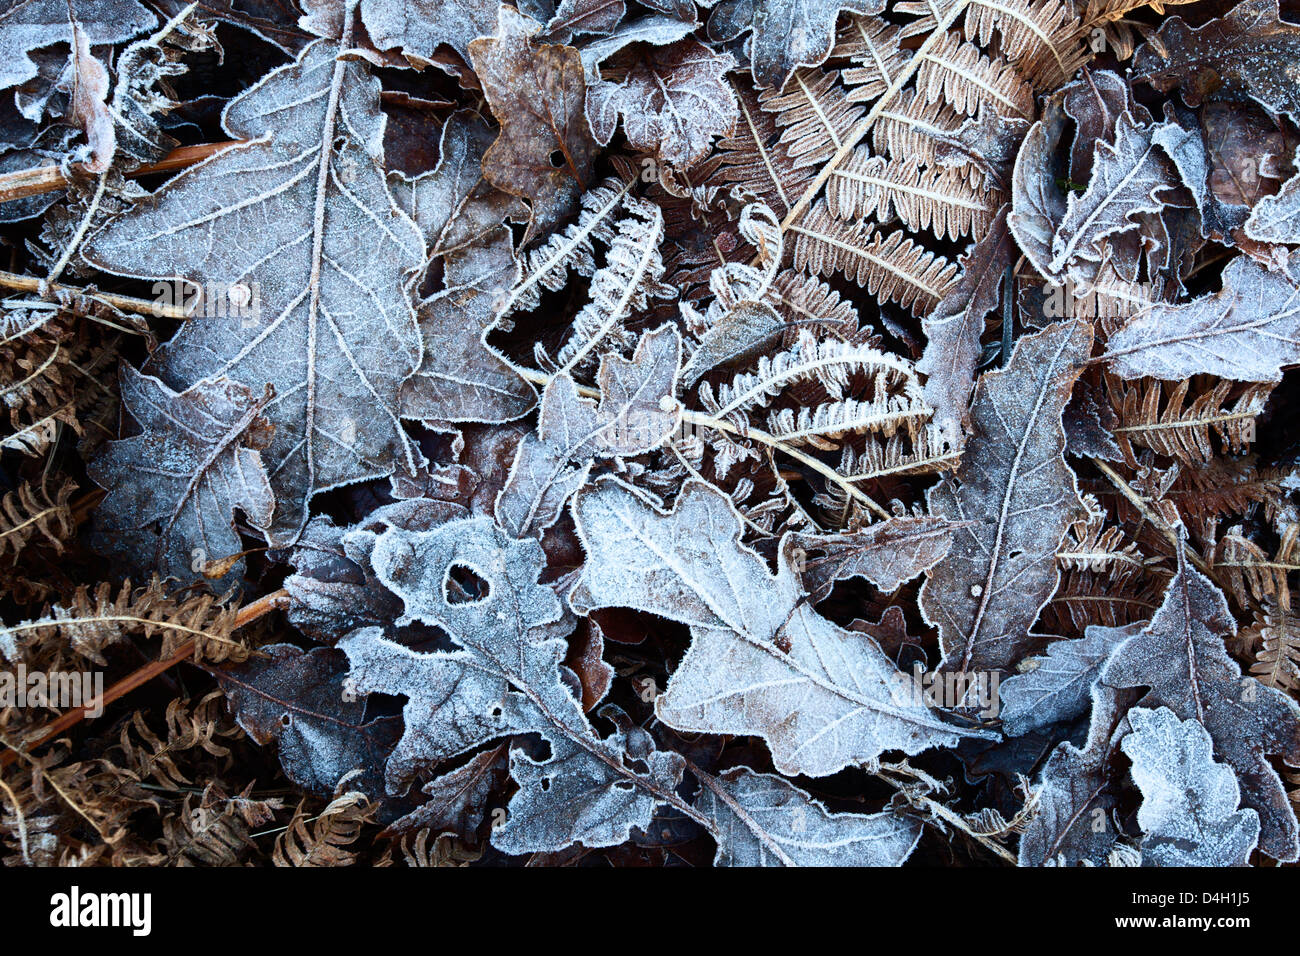 Frosty leaves including oak and bracken in Old Spring Wood near Summerbridge, North Yorkshire, England, UK - Stock Image